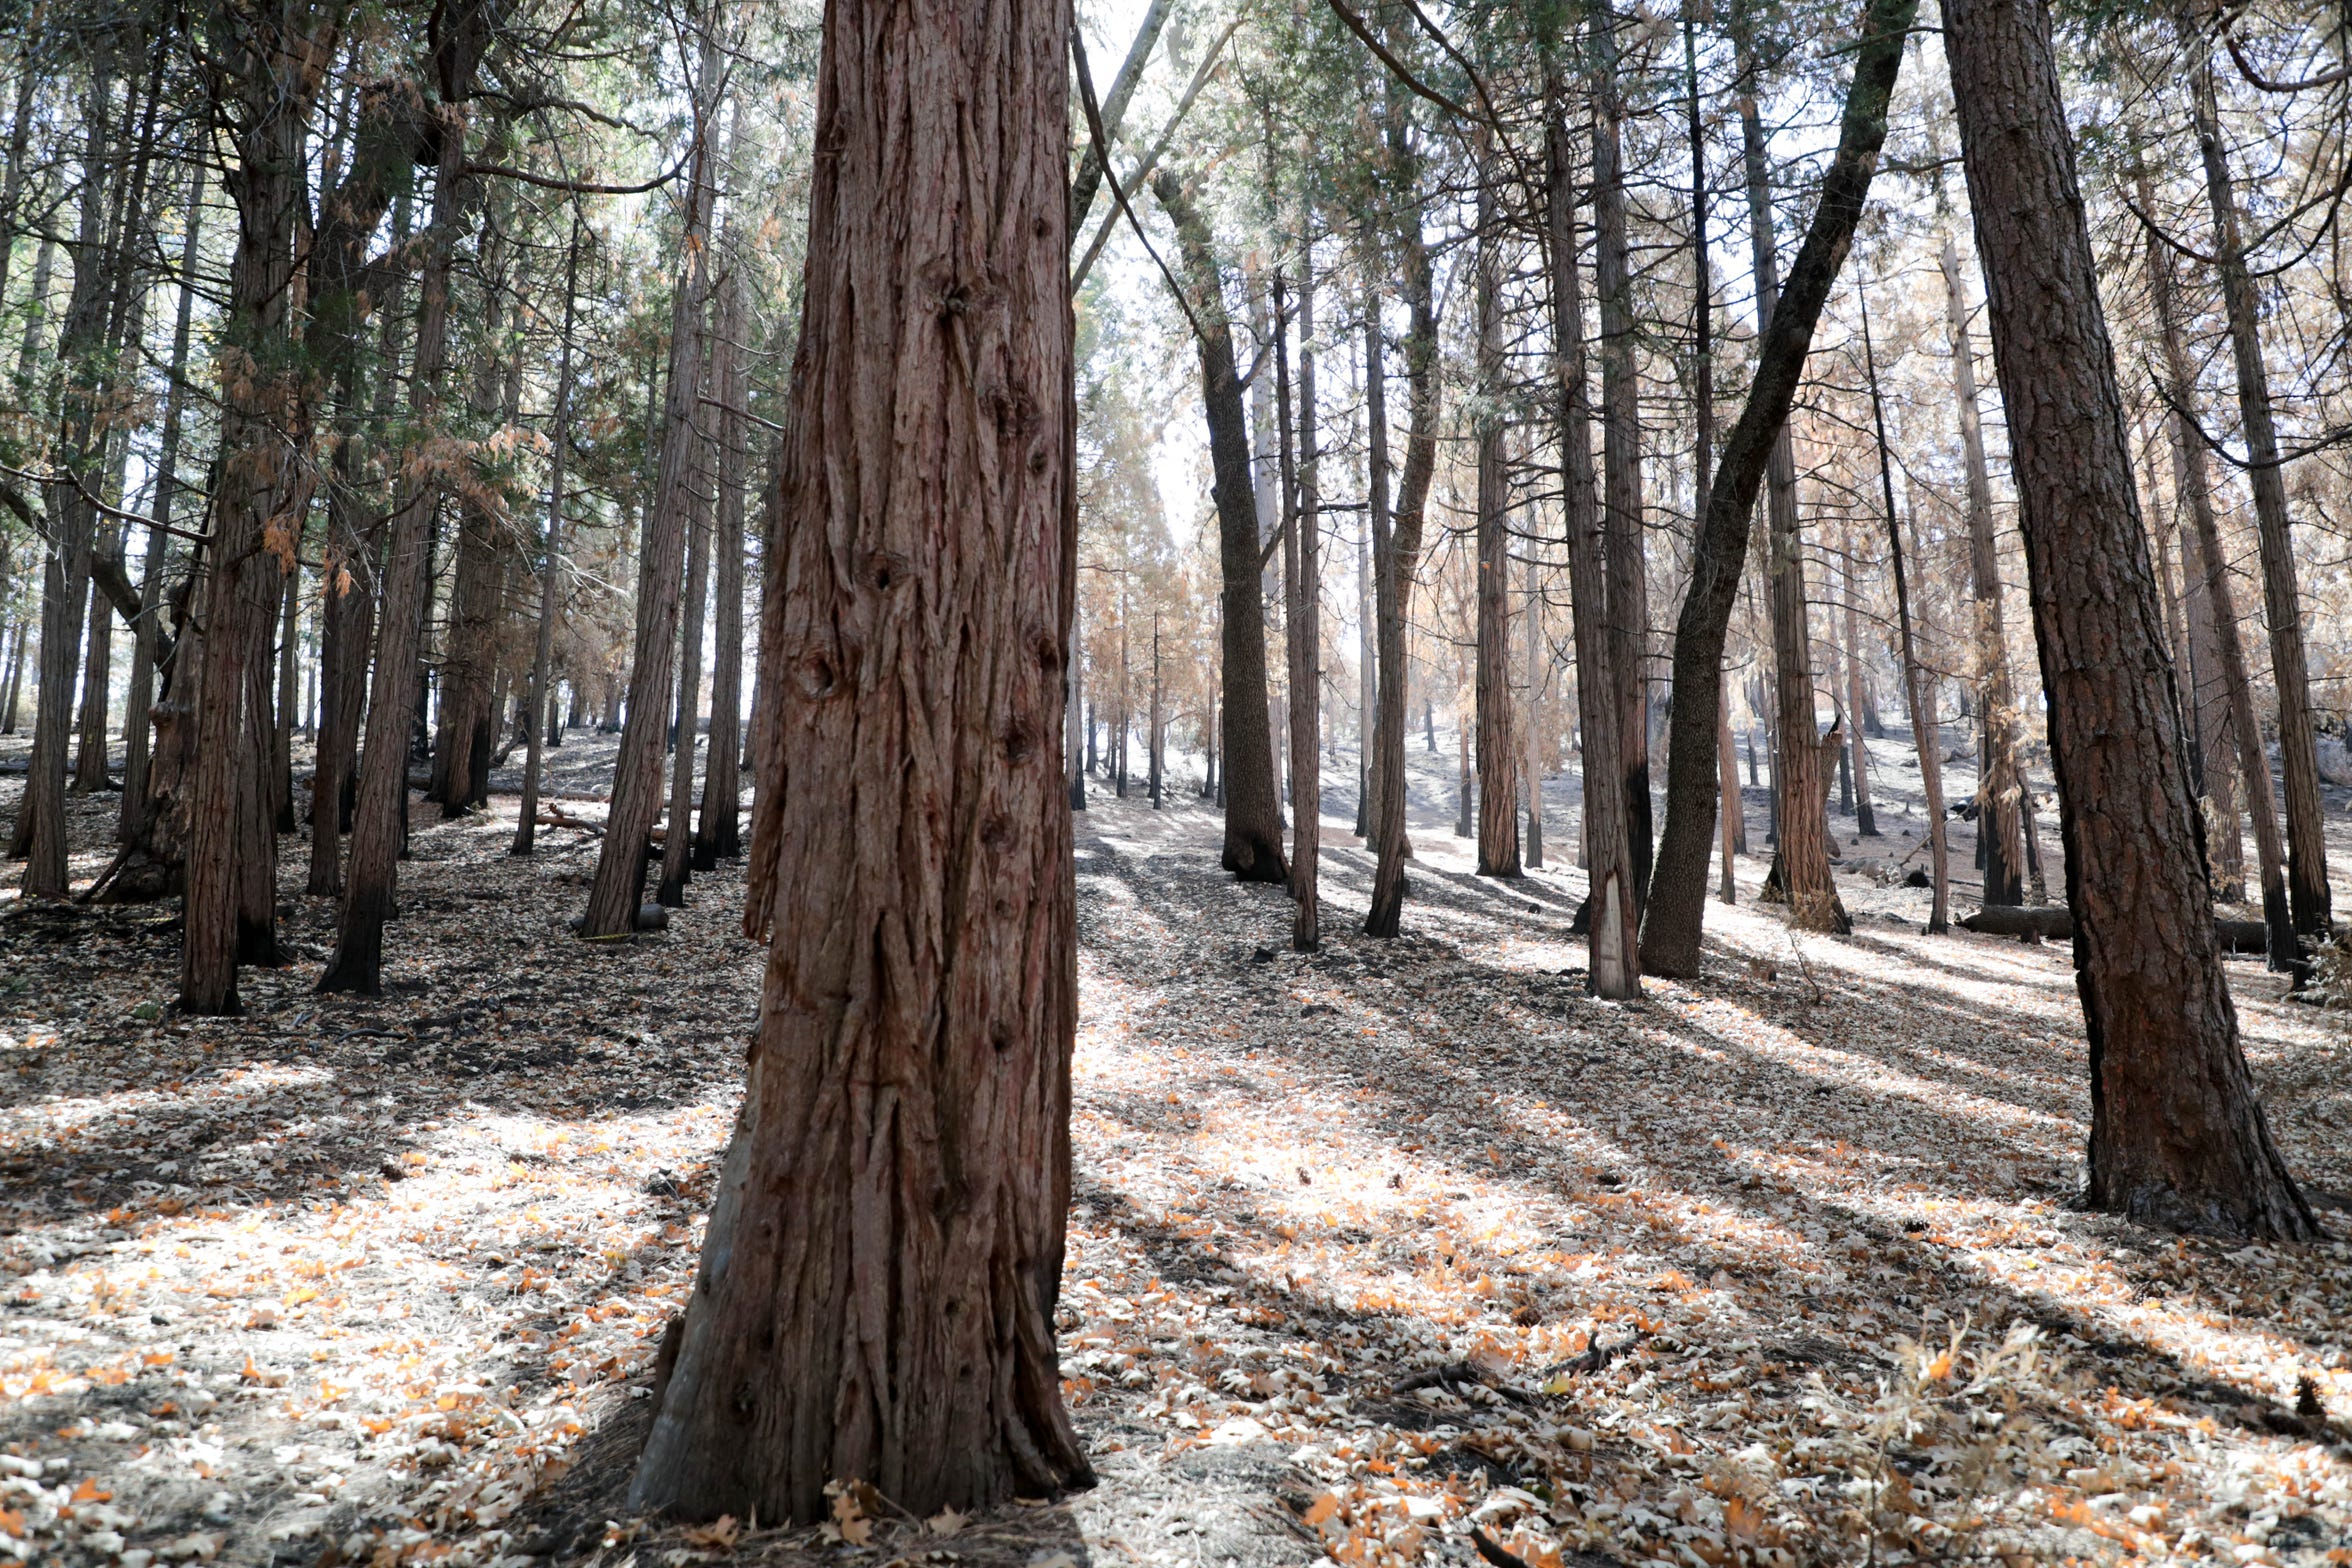 Two years before the Cranston Fire, Idyllwild Arts Foundation received grant funding to create a fuel break around the school's perimeter, and remove trees and prune shrubs across more than 80 acres (including this area). Fire officials credit the thinning, particularly fuel breaks, for slowing the progression of the fire, and safeguarding the campus and town.